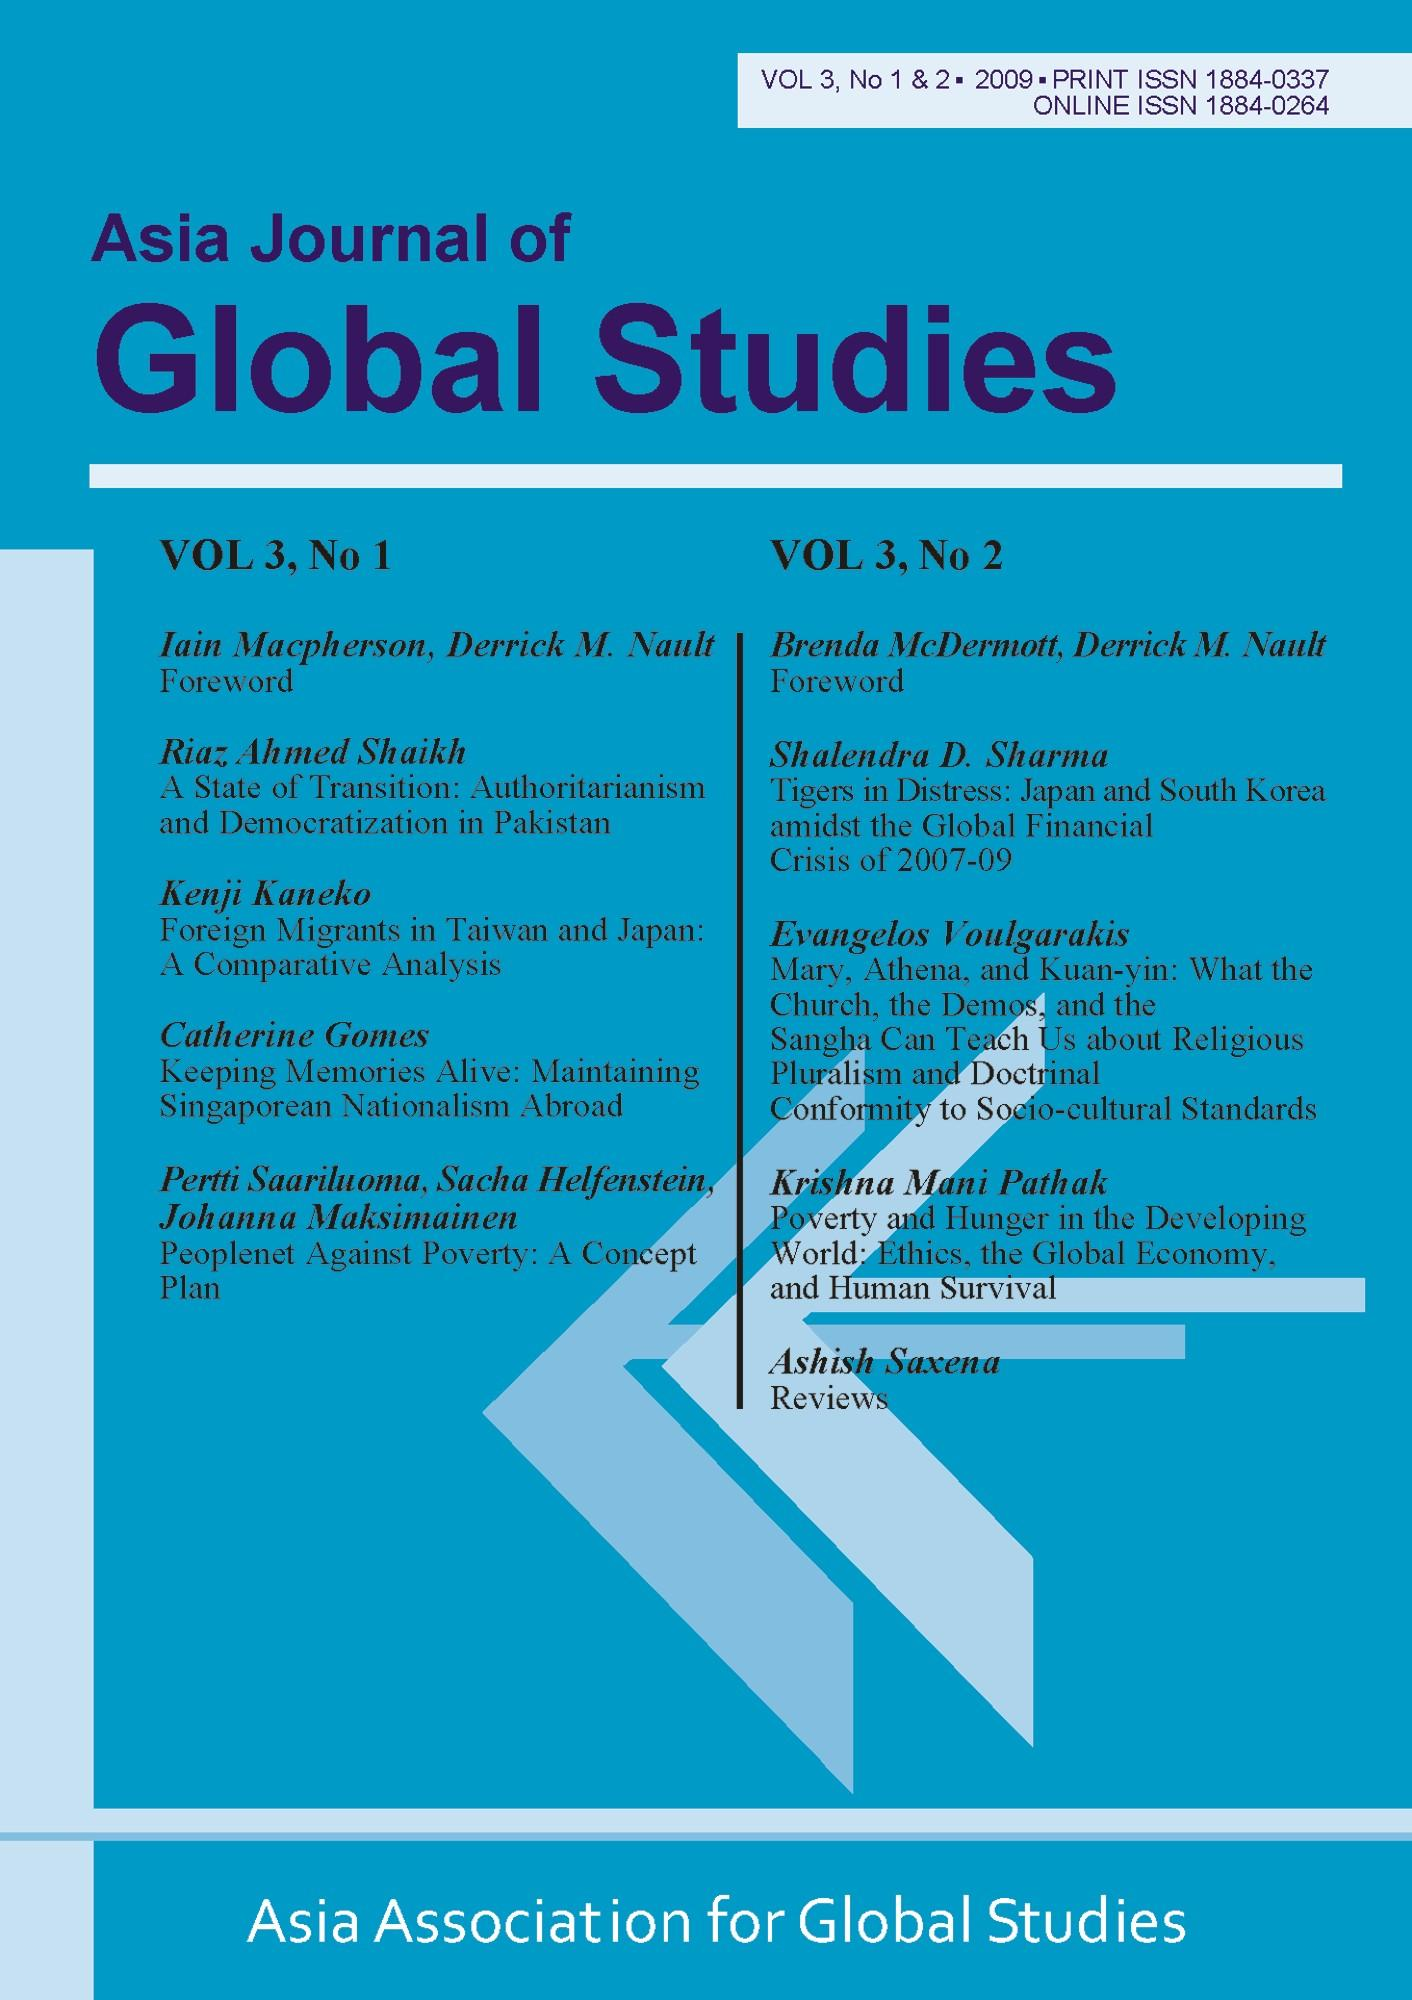 Asia Journal of Global Studies: Vol. 3, Nos. 1 and 2 EB9781599428253